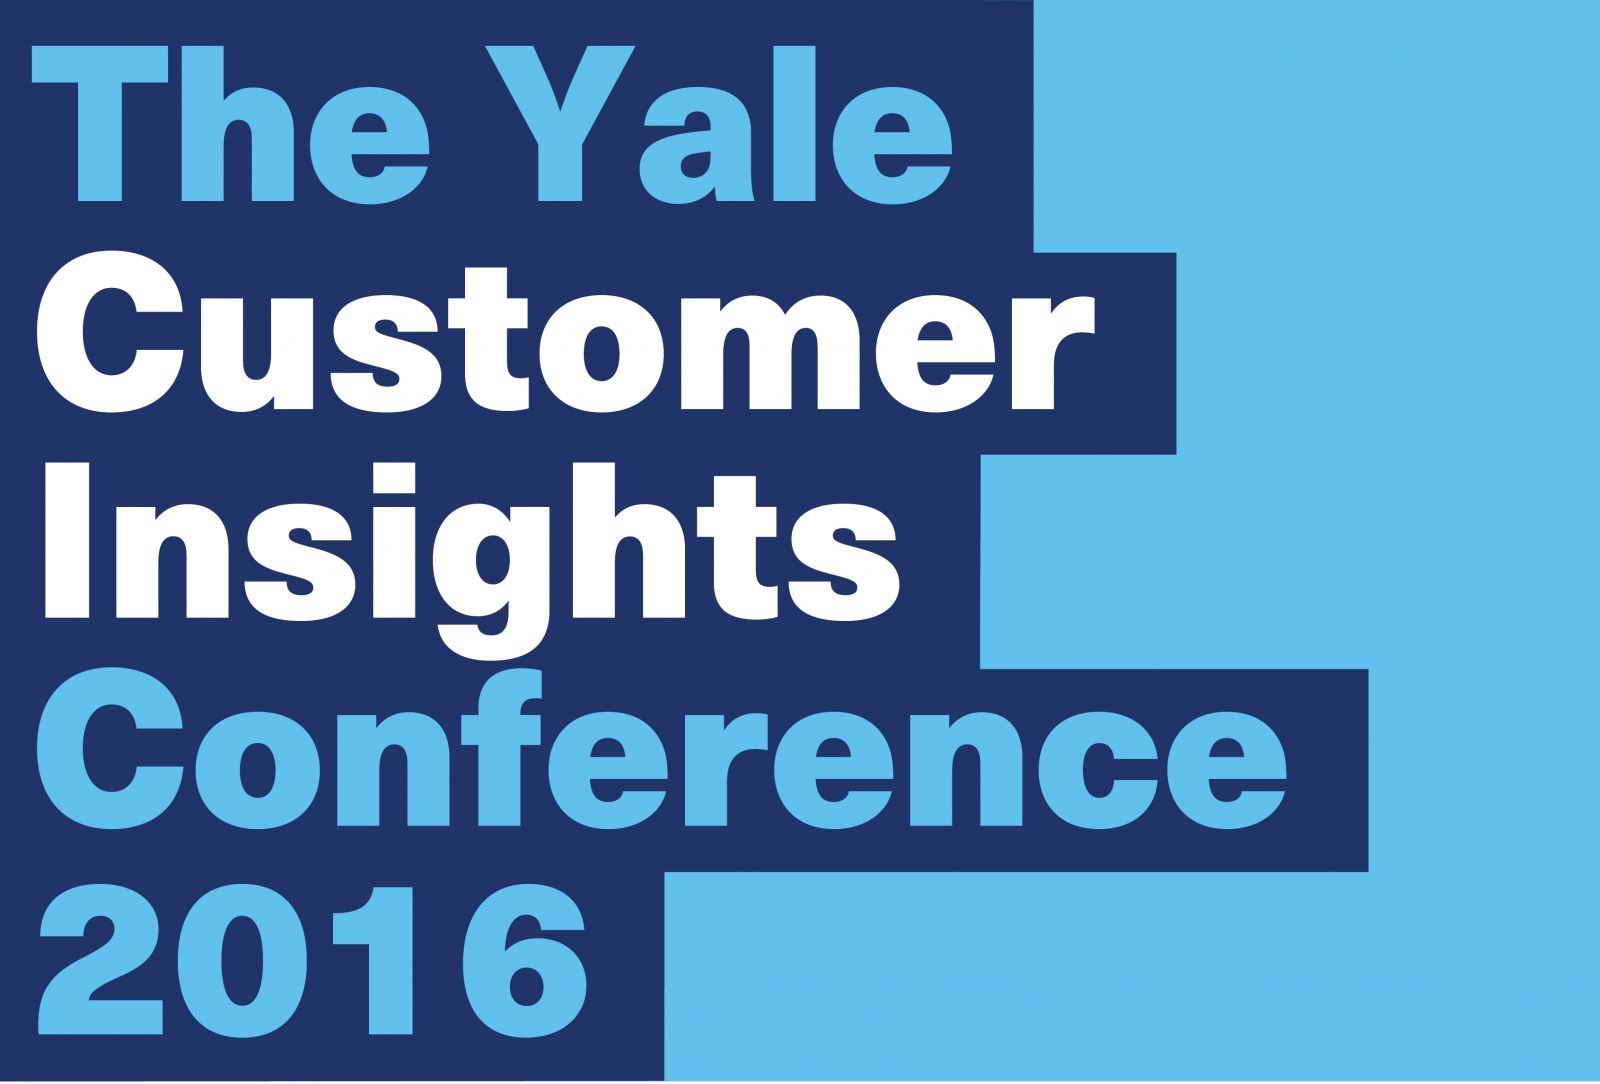 CMB Conference Recap: Yale's Customer Insights Conference